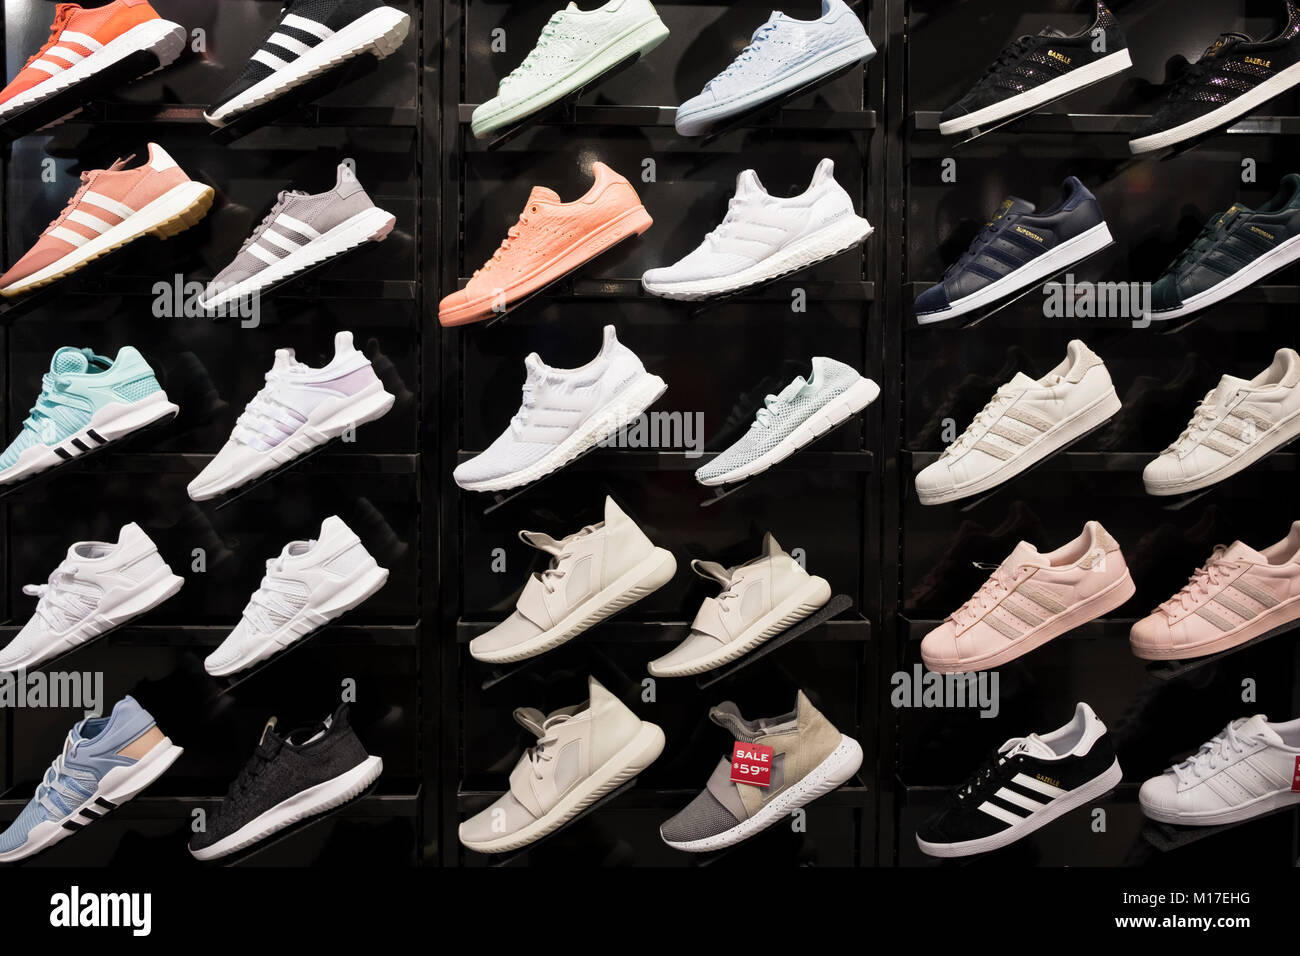 size 40 bdd16 d60b0 Adidas Shoes Display Stock Photos & Adidas Shoes Display ...